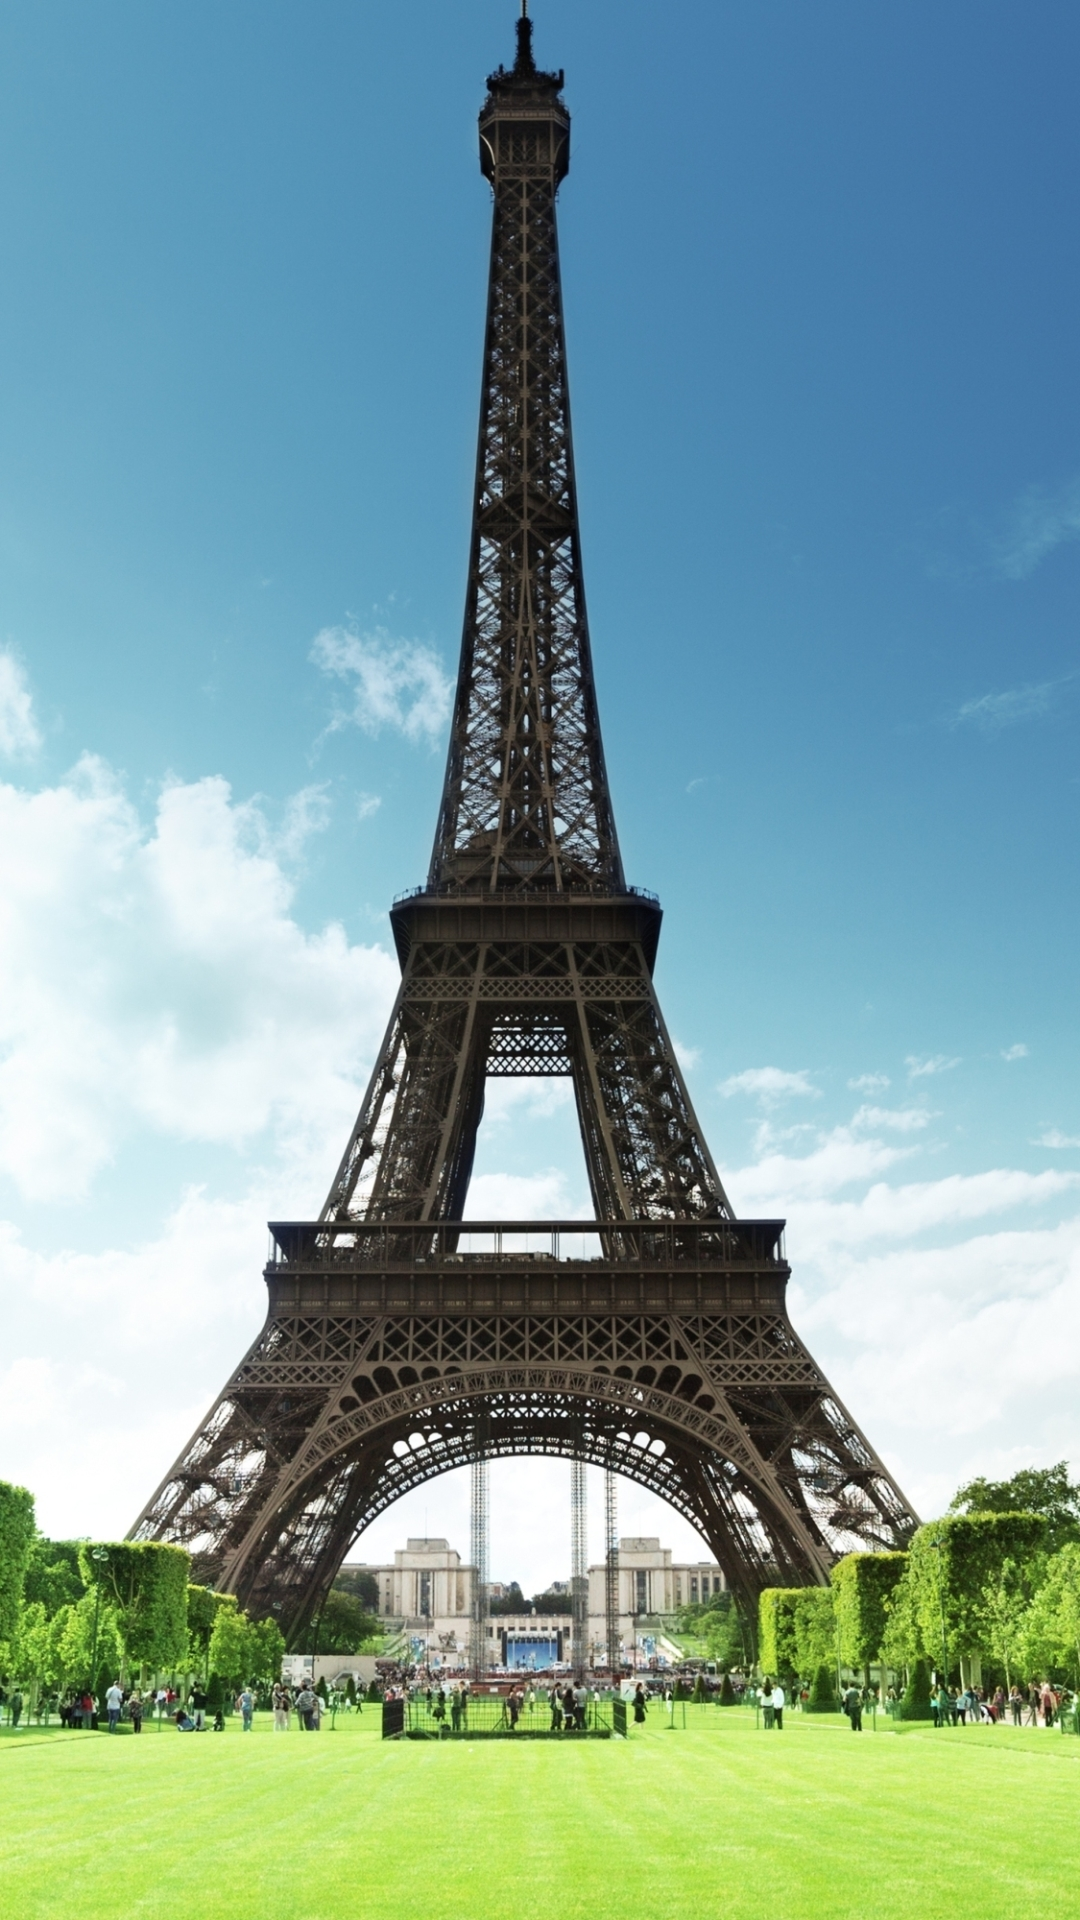 Man Made Eiffel Tower 1080x1920 Wallpaper Id 12509 Mobile Abyss